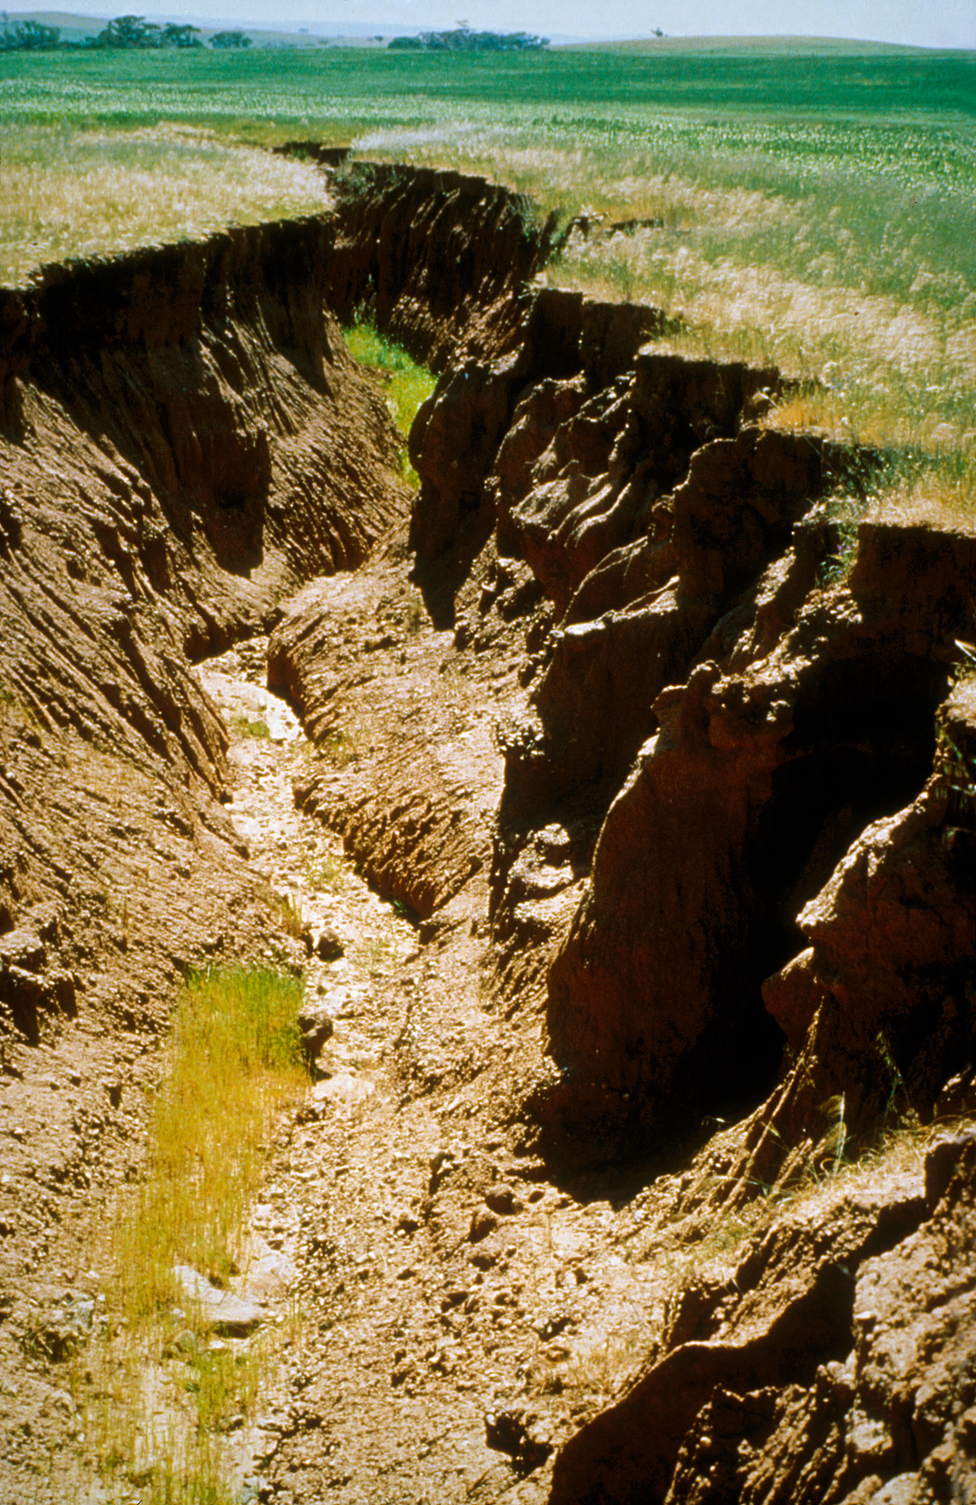 Gully erosion in the warren ca csiro science image for Soil erosion definition